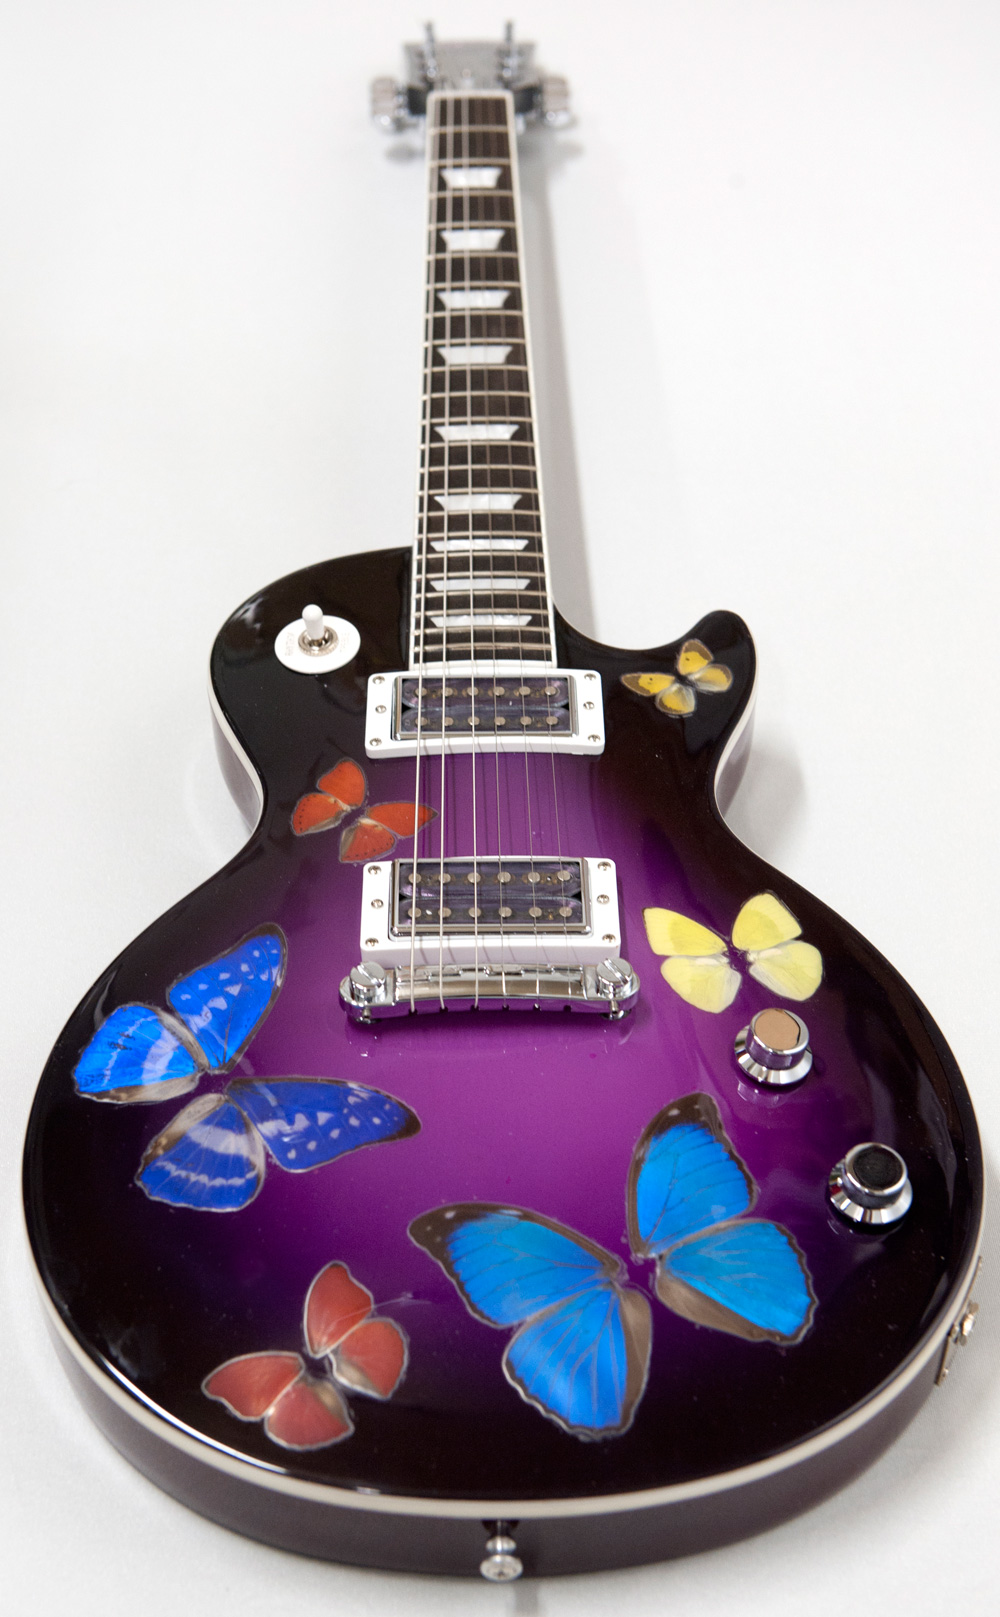 Damien Hirst 'Butterfly' guitar, signed by Hirst